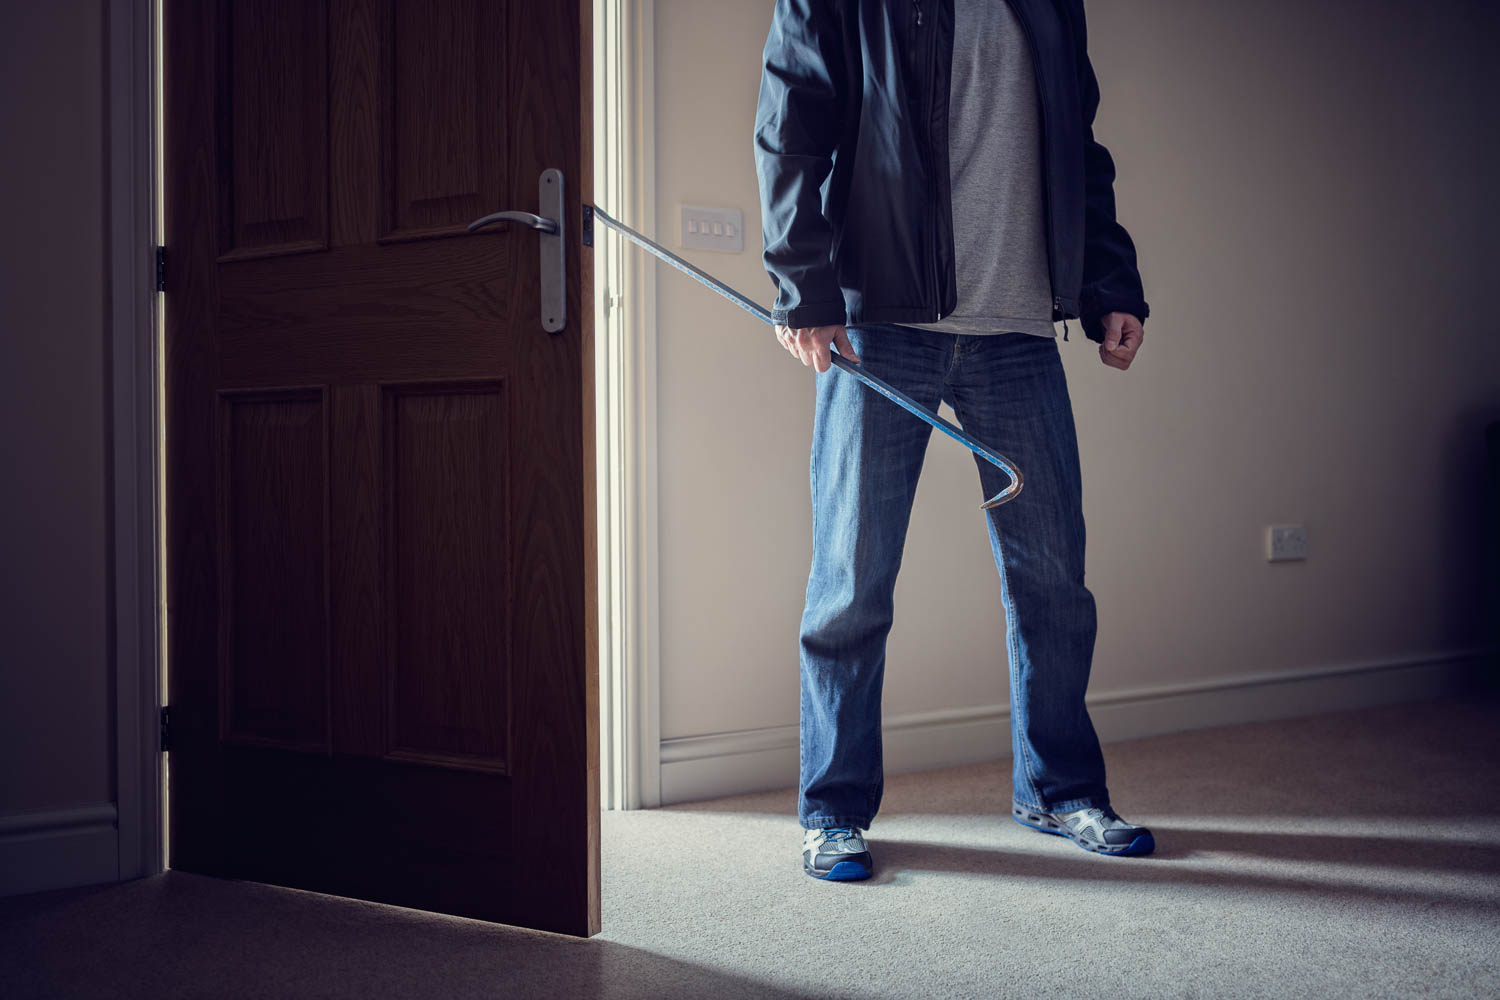 Fort Lauderdale Property Burglary Crimes in Florida include robbery. you'll need a criminal defense lawyer for burglary charges